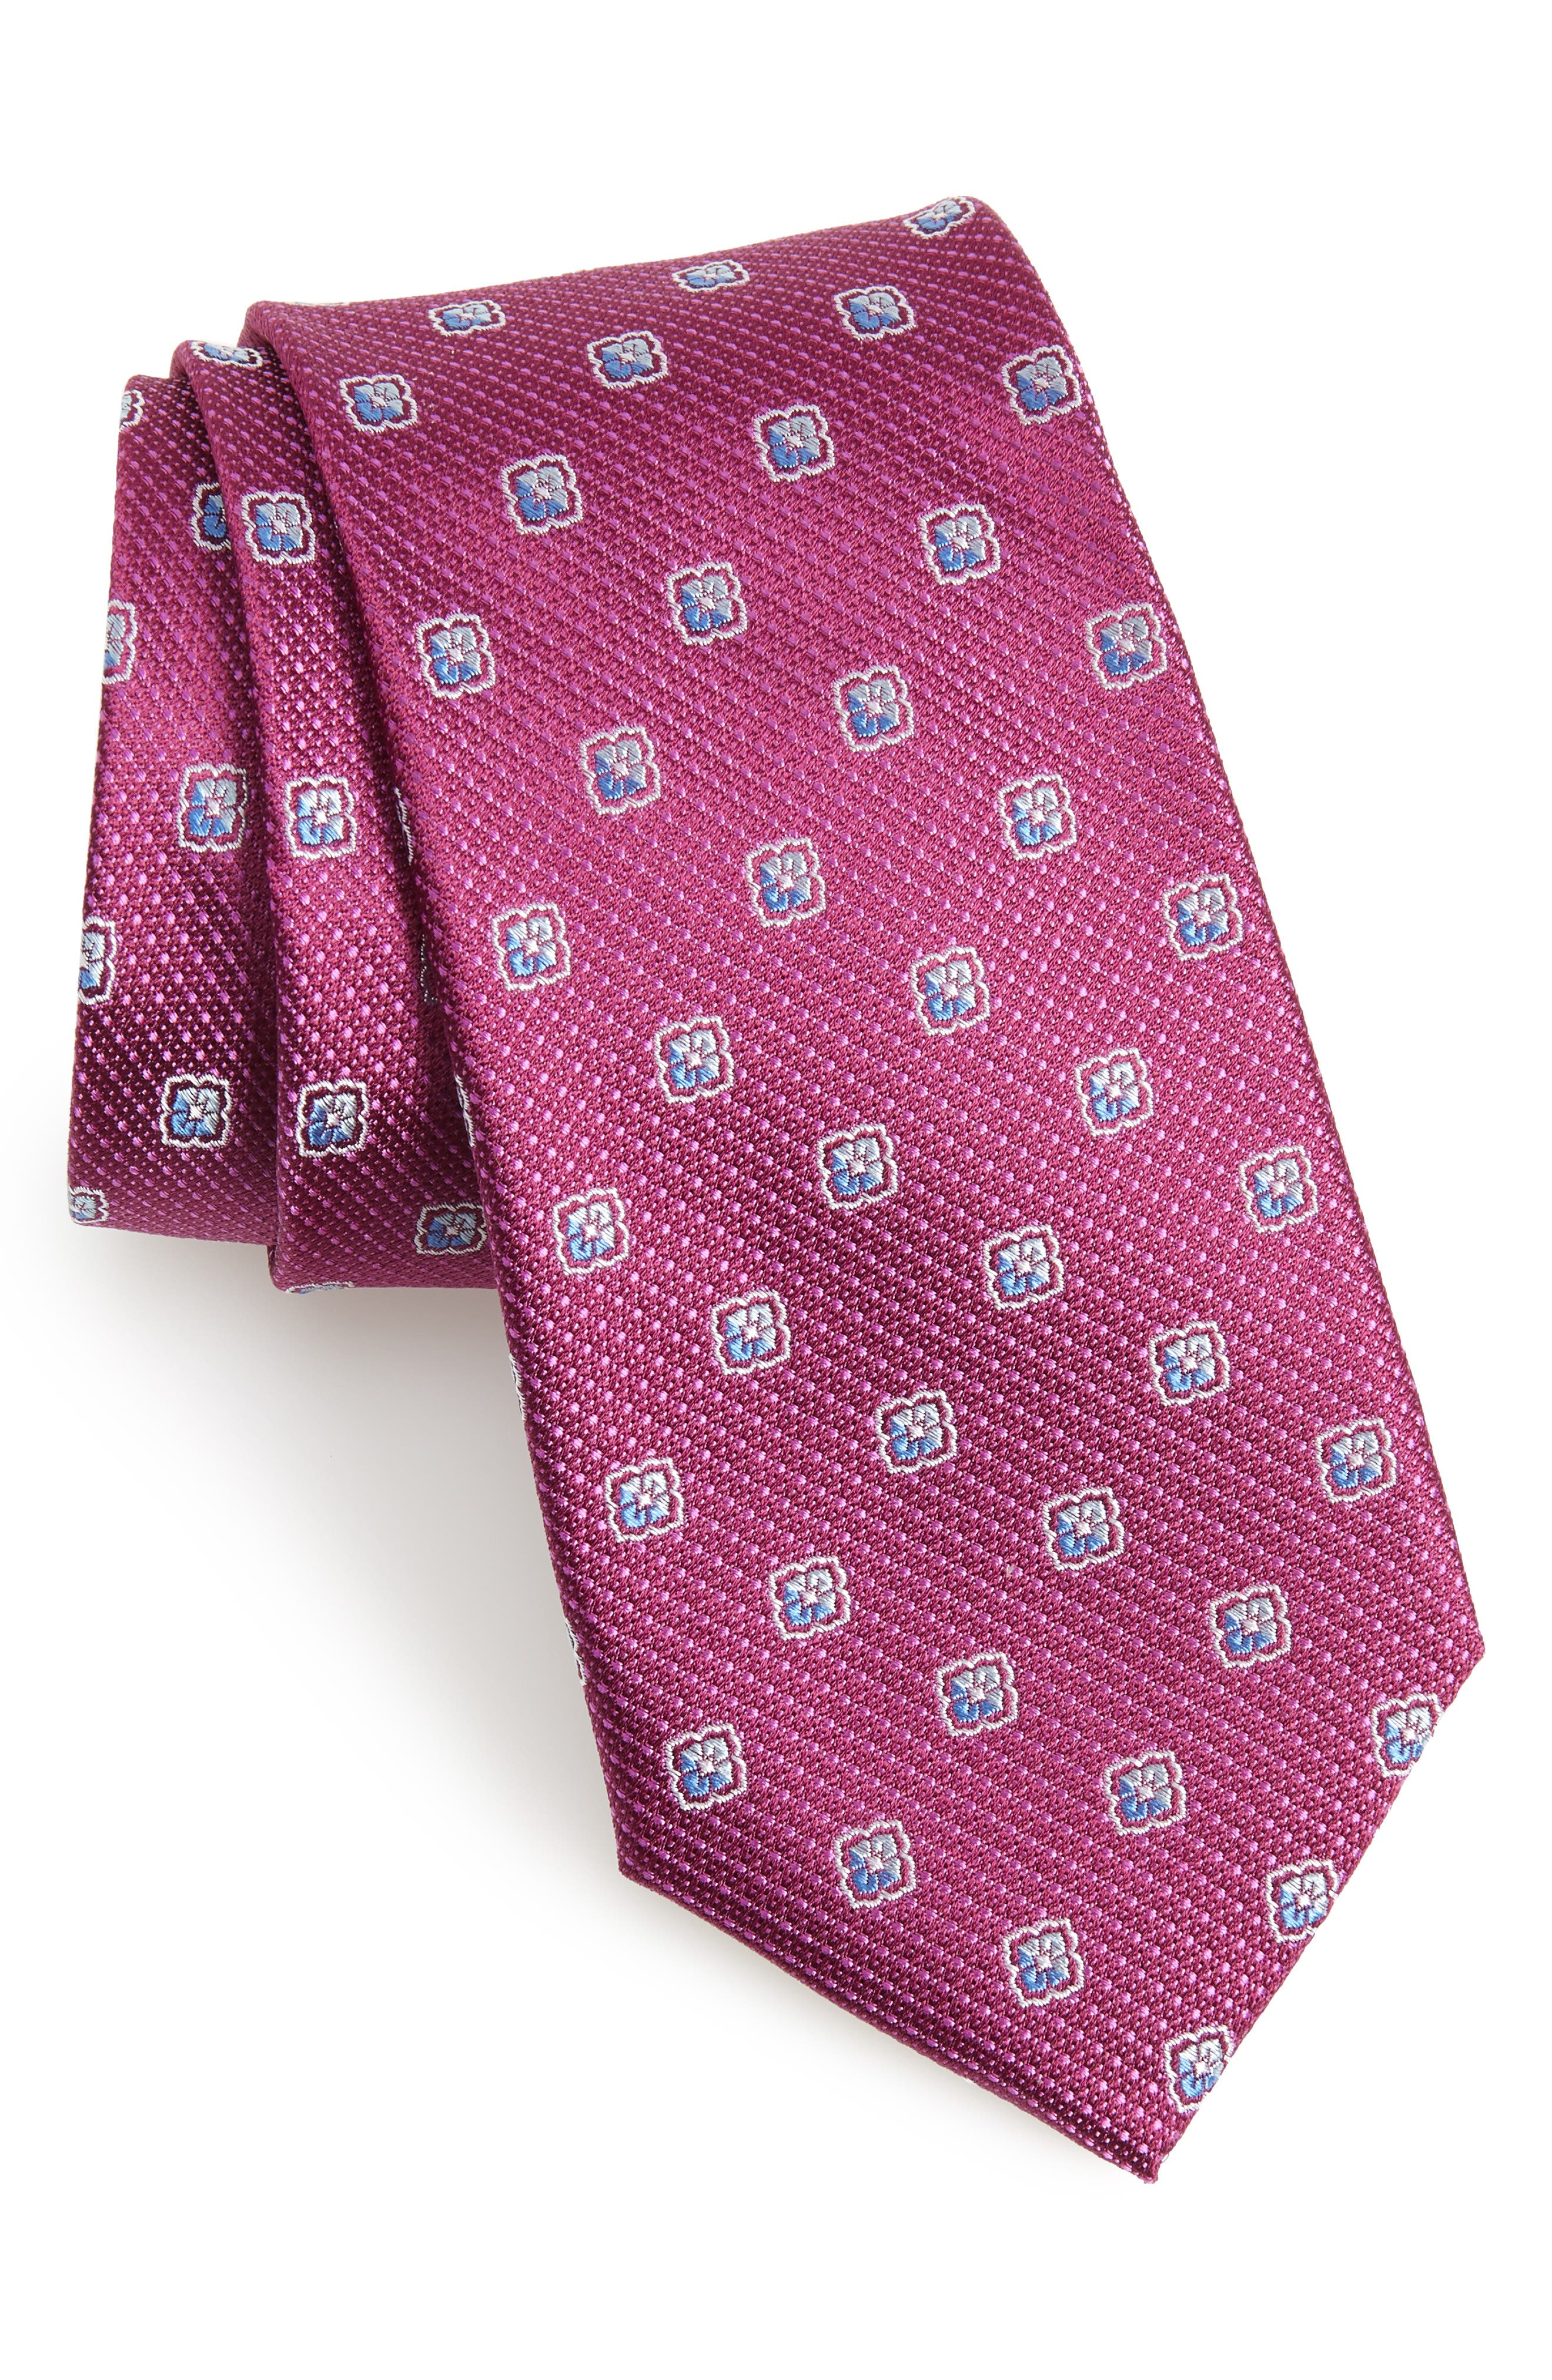 Leary Medallion Silk Tie,                             Main thumbnail 1, color,                             Magenta